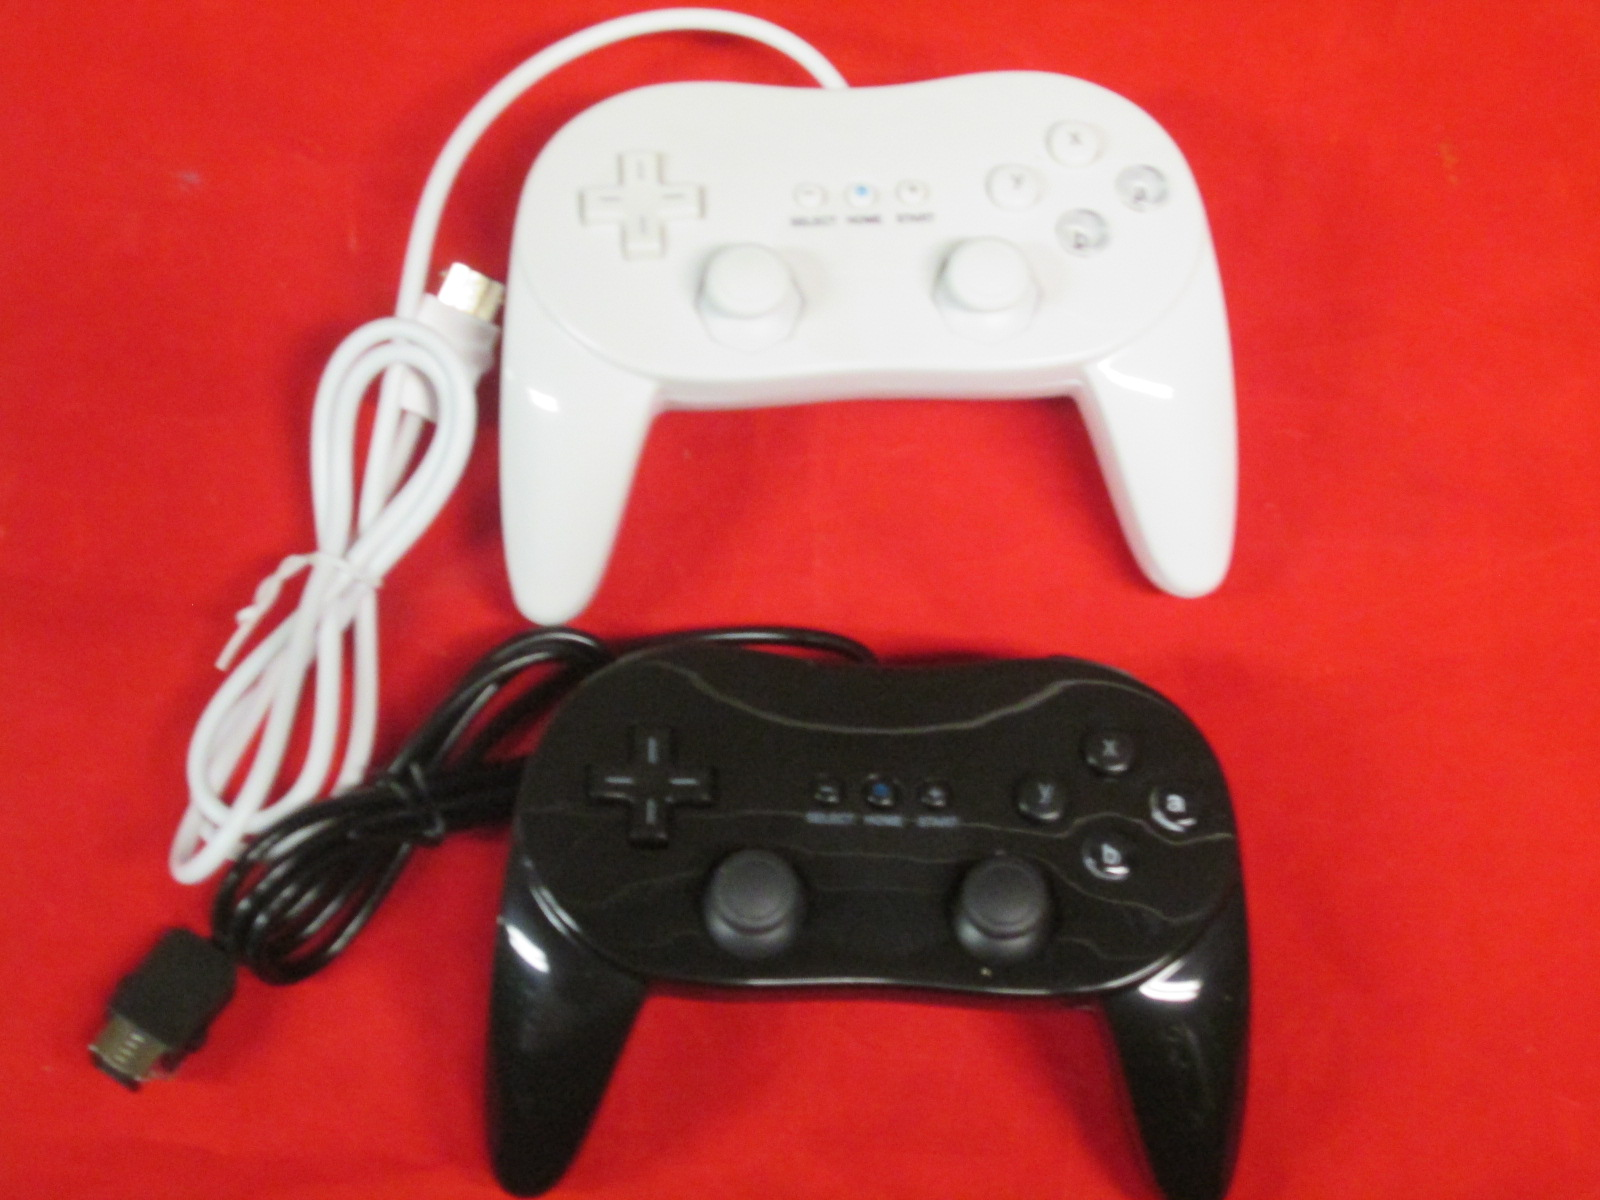 2 X New Classic Pro Remote Controller For Nintendo Wii Black & White